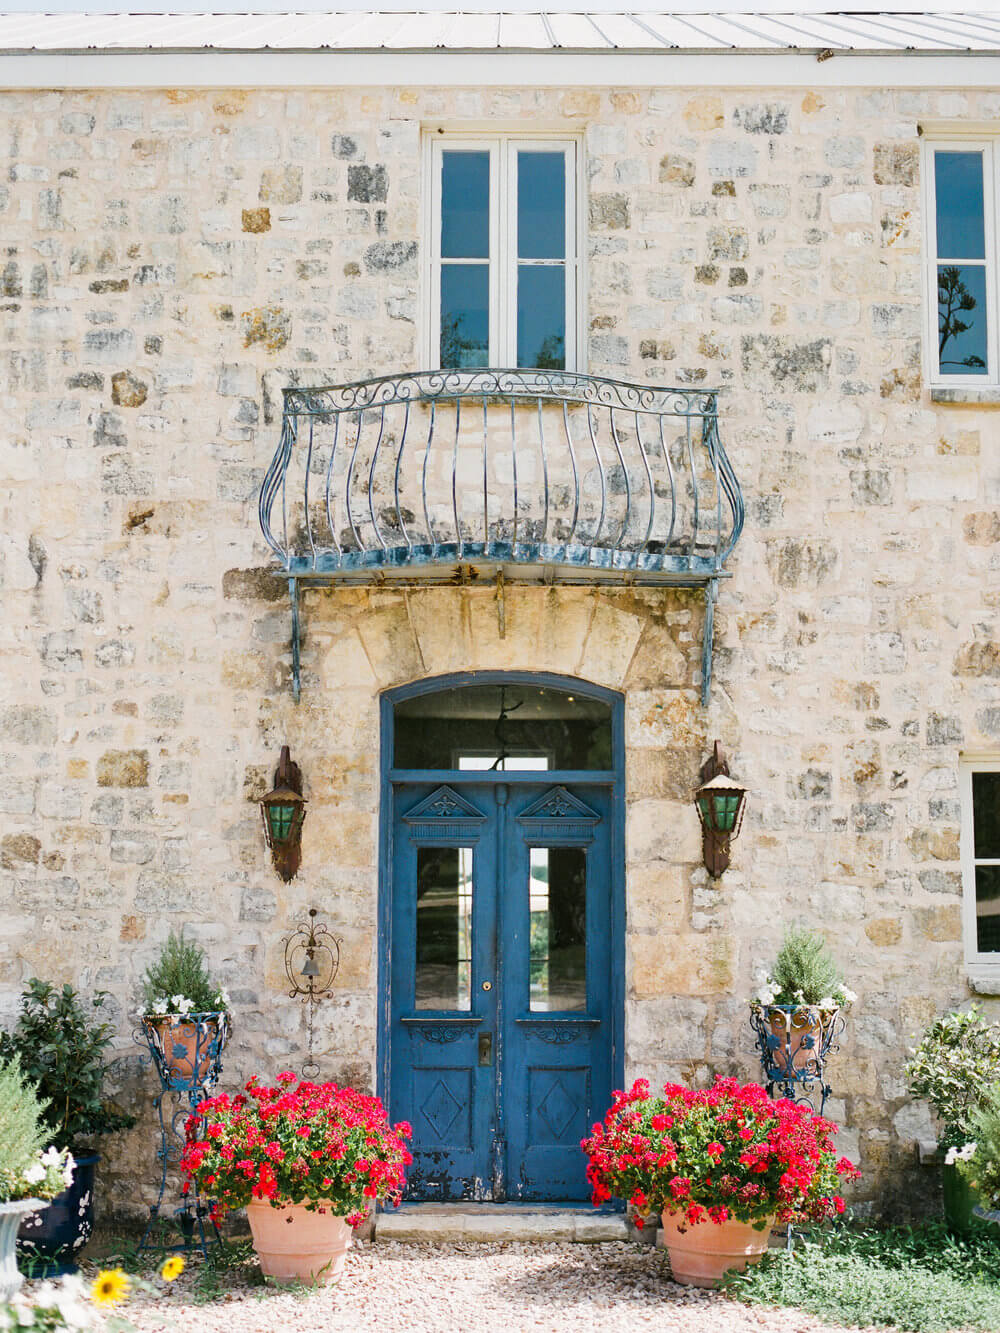 French country wedding inspiration venue location in Texas. Blue door and accents.